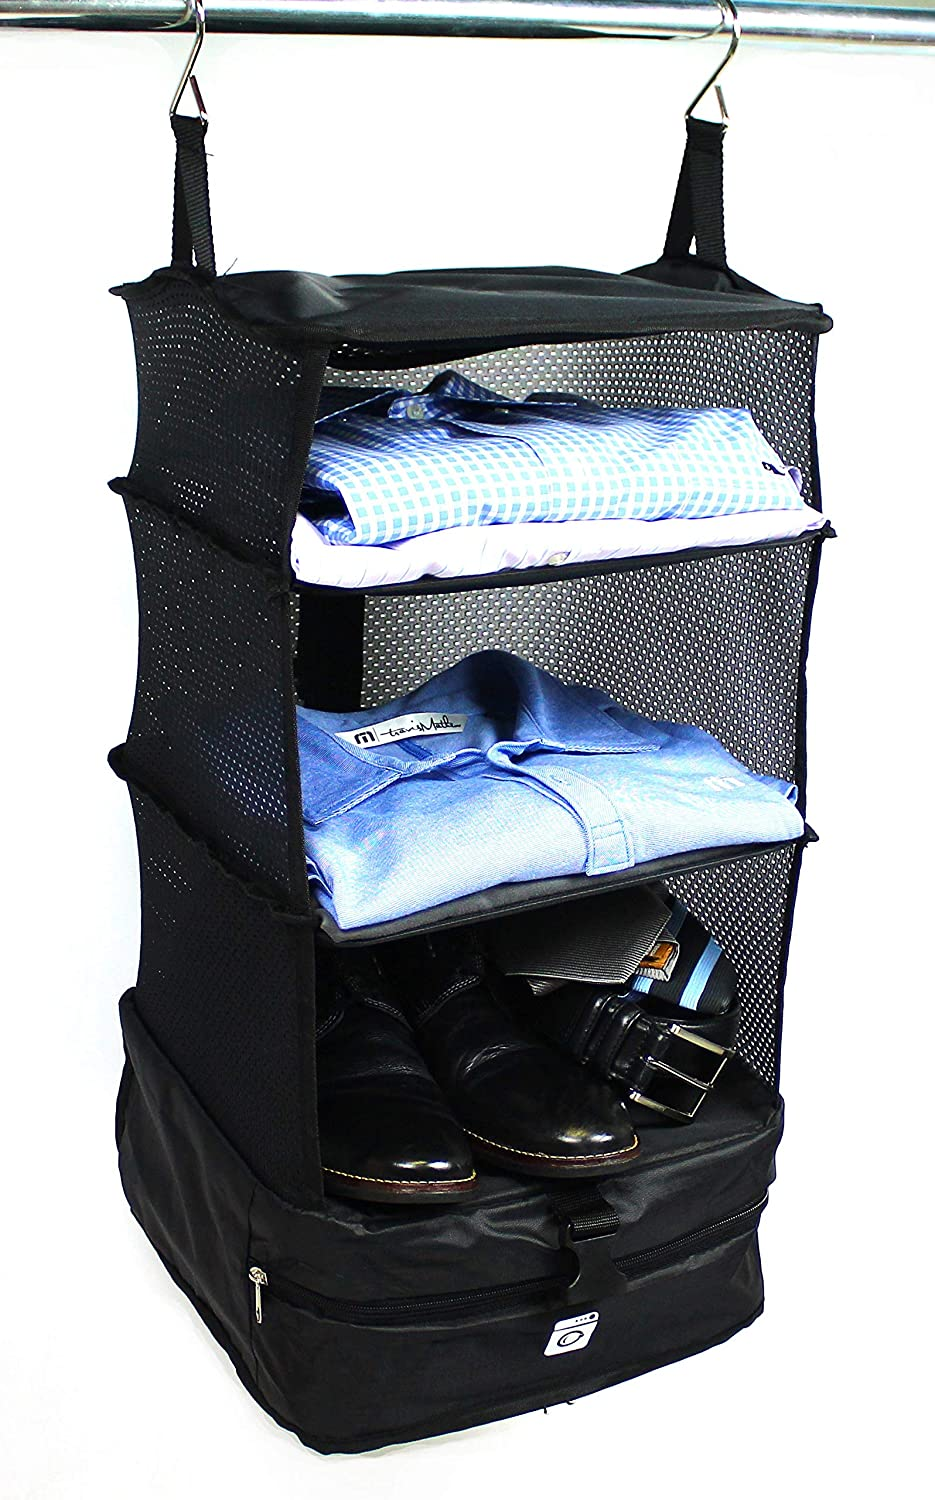 Stow-N-Go Portable Luggage System - Small - Black, Packable Hanging Shelves and Travel Organizer Grand Fusion Housewares 647166278258